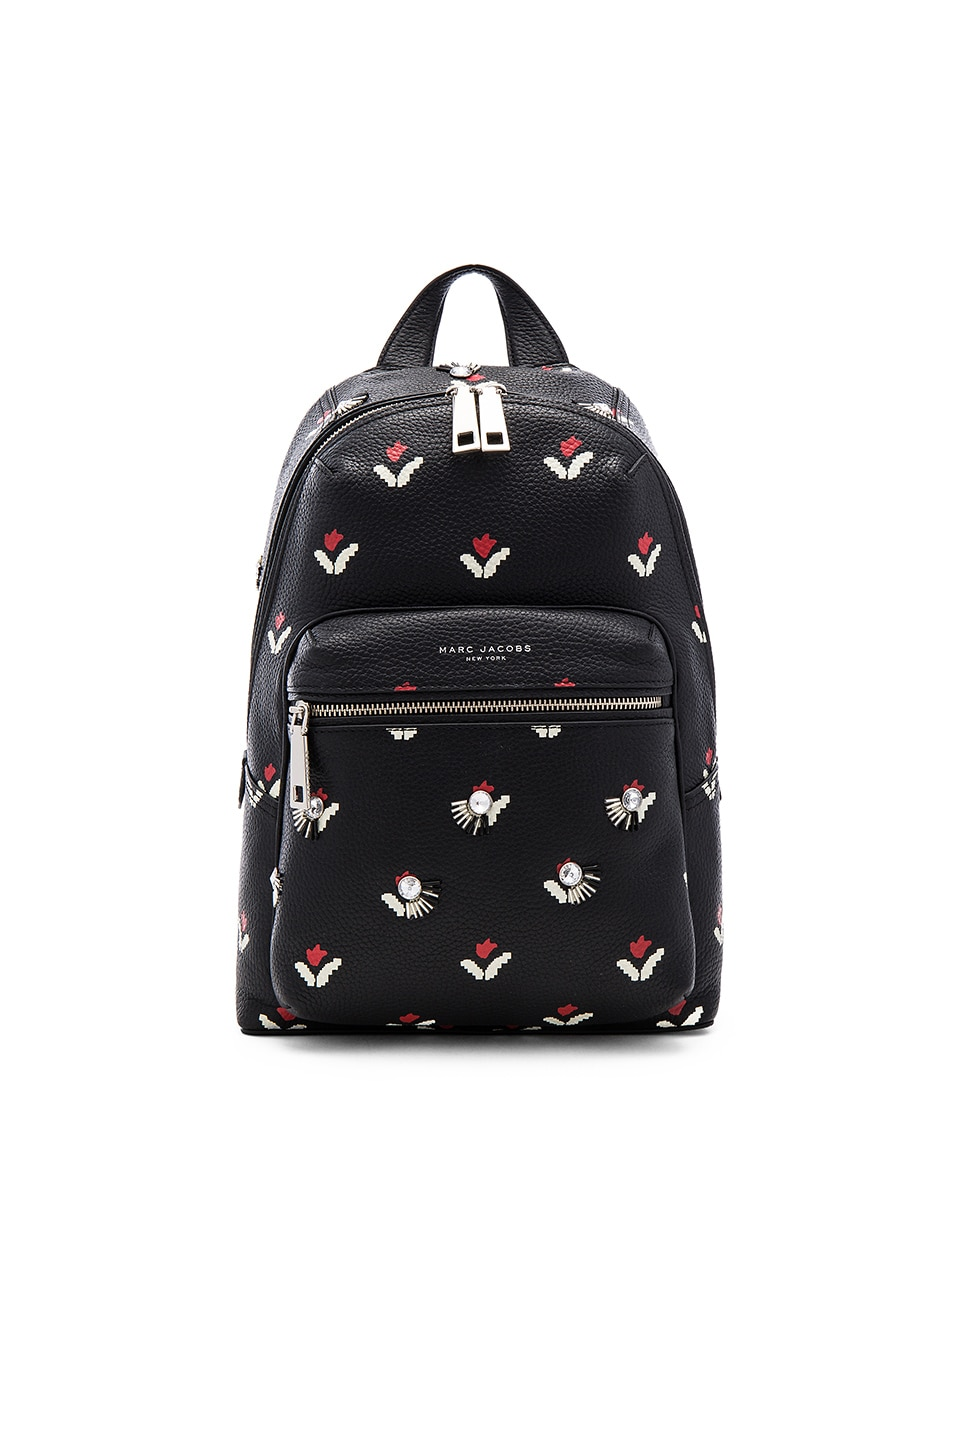 Embellished Tulip Leather Backpack by Marc Jacobs